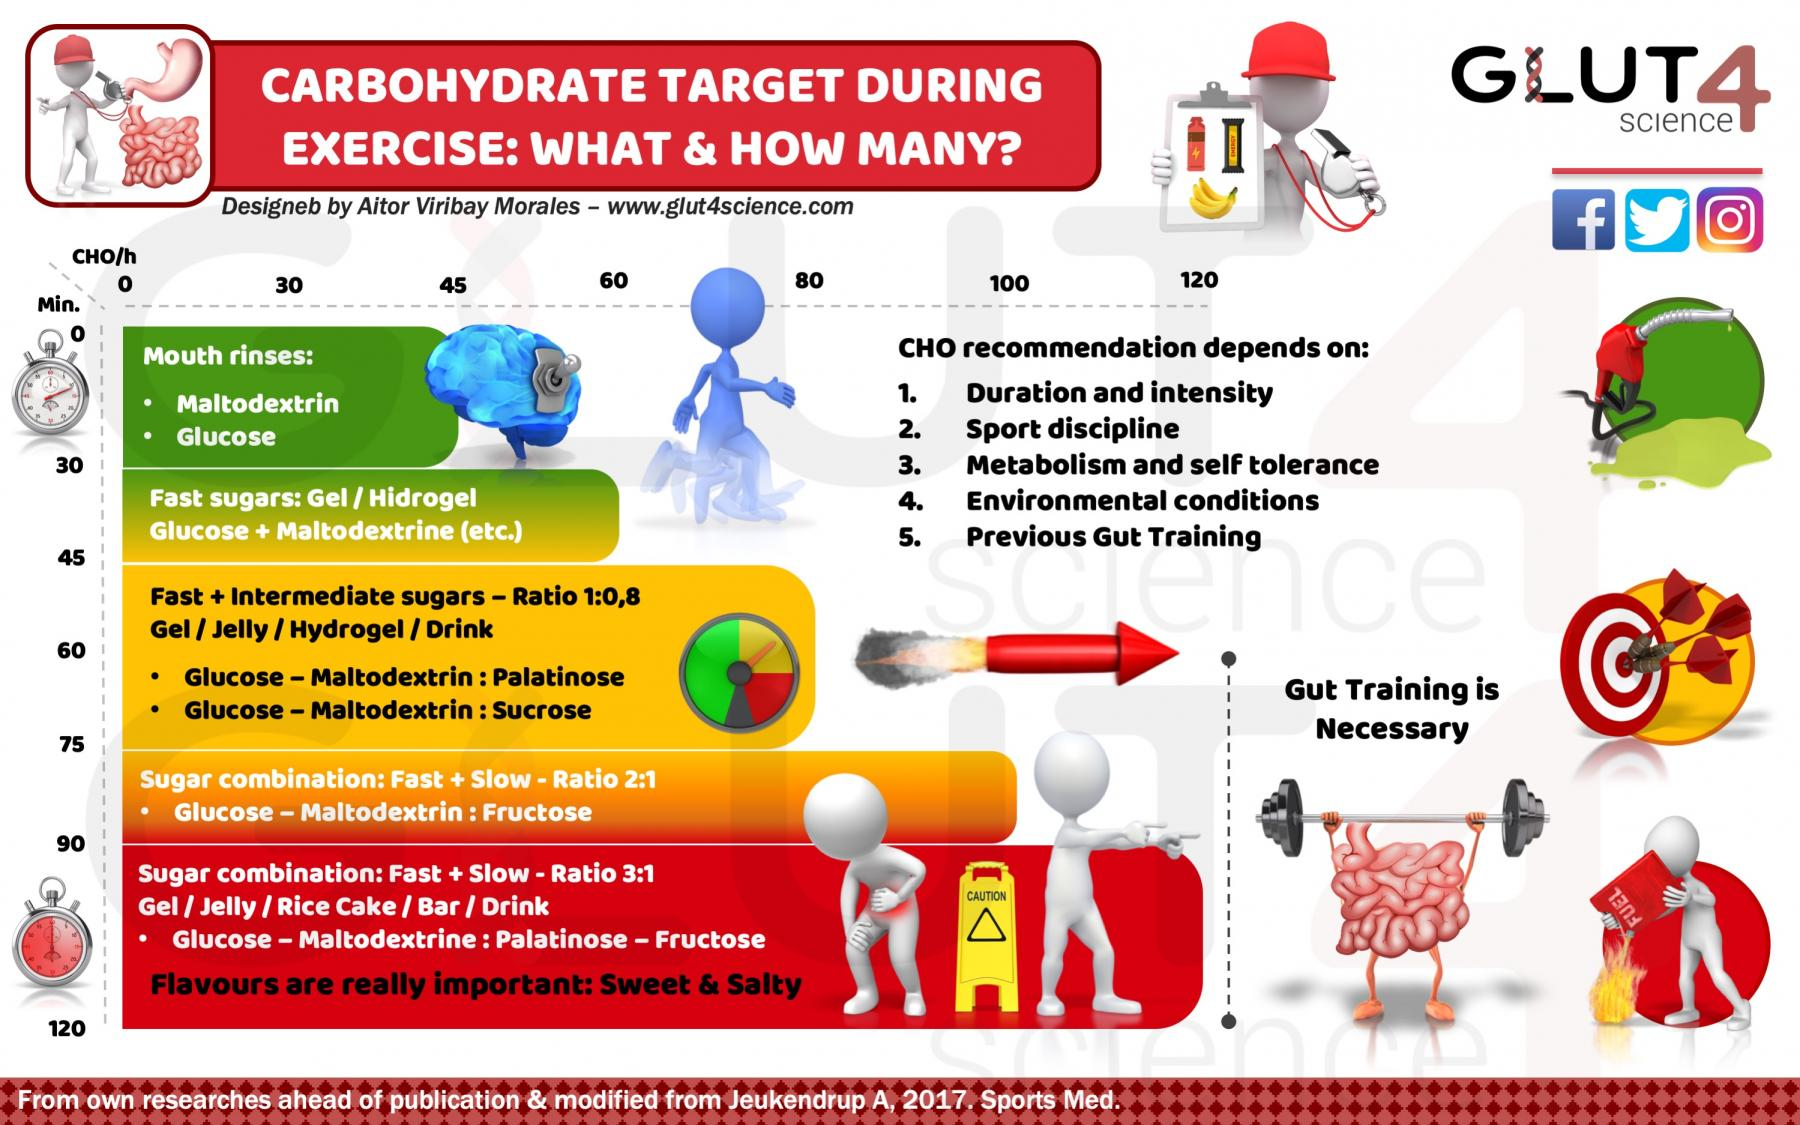 Carbohydrate recommendations during exercise